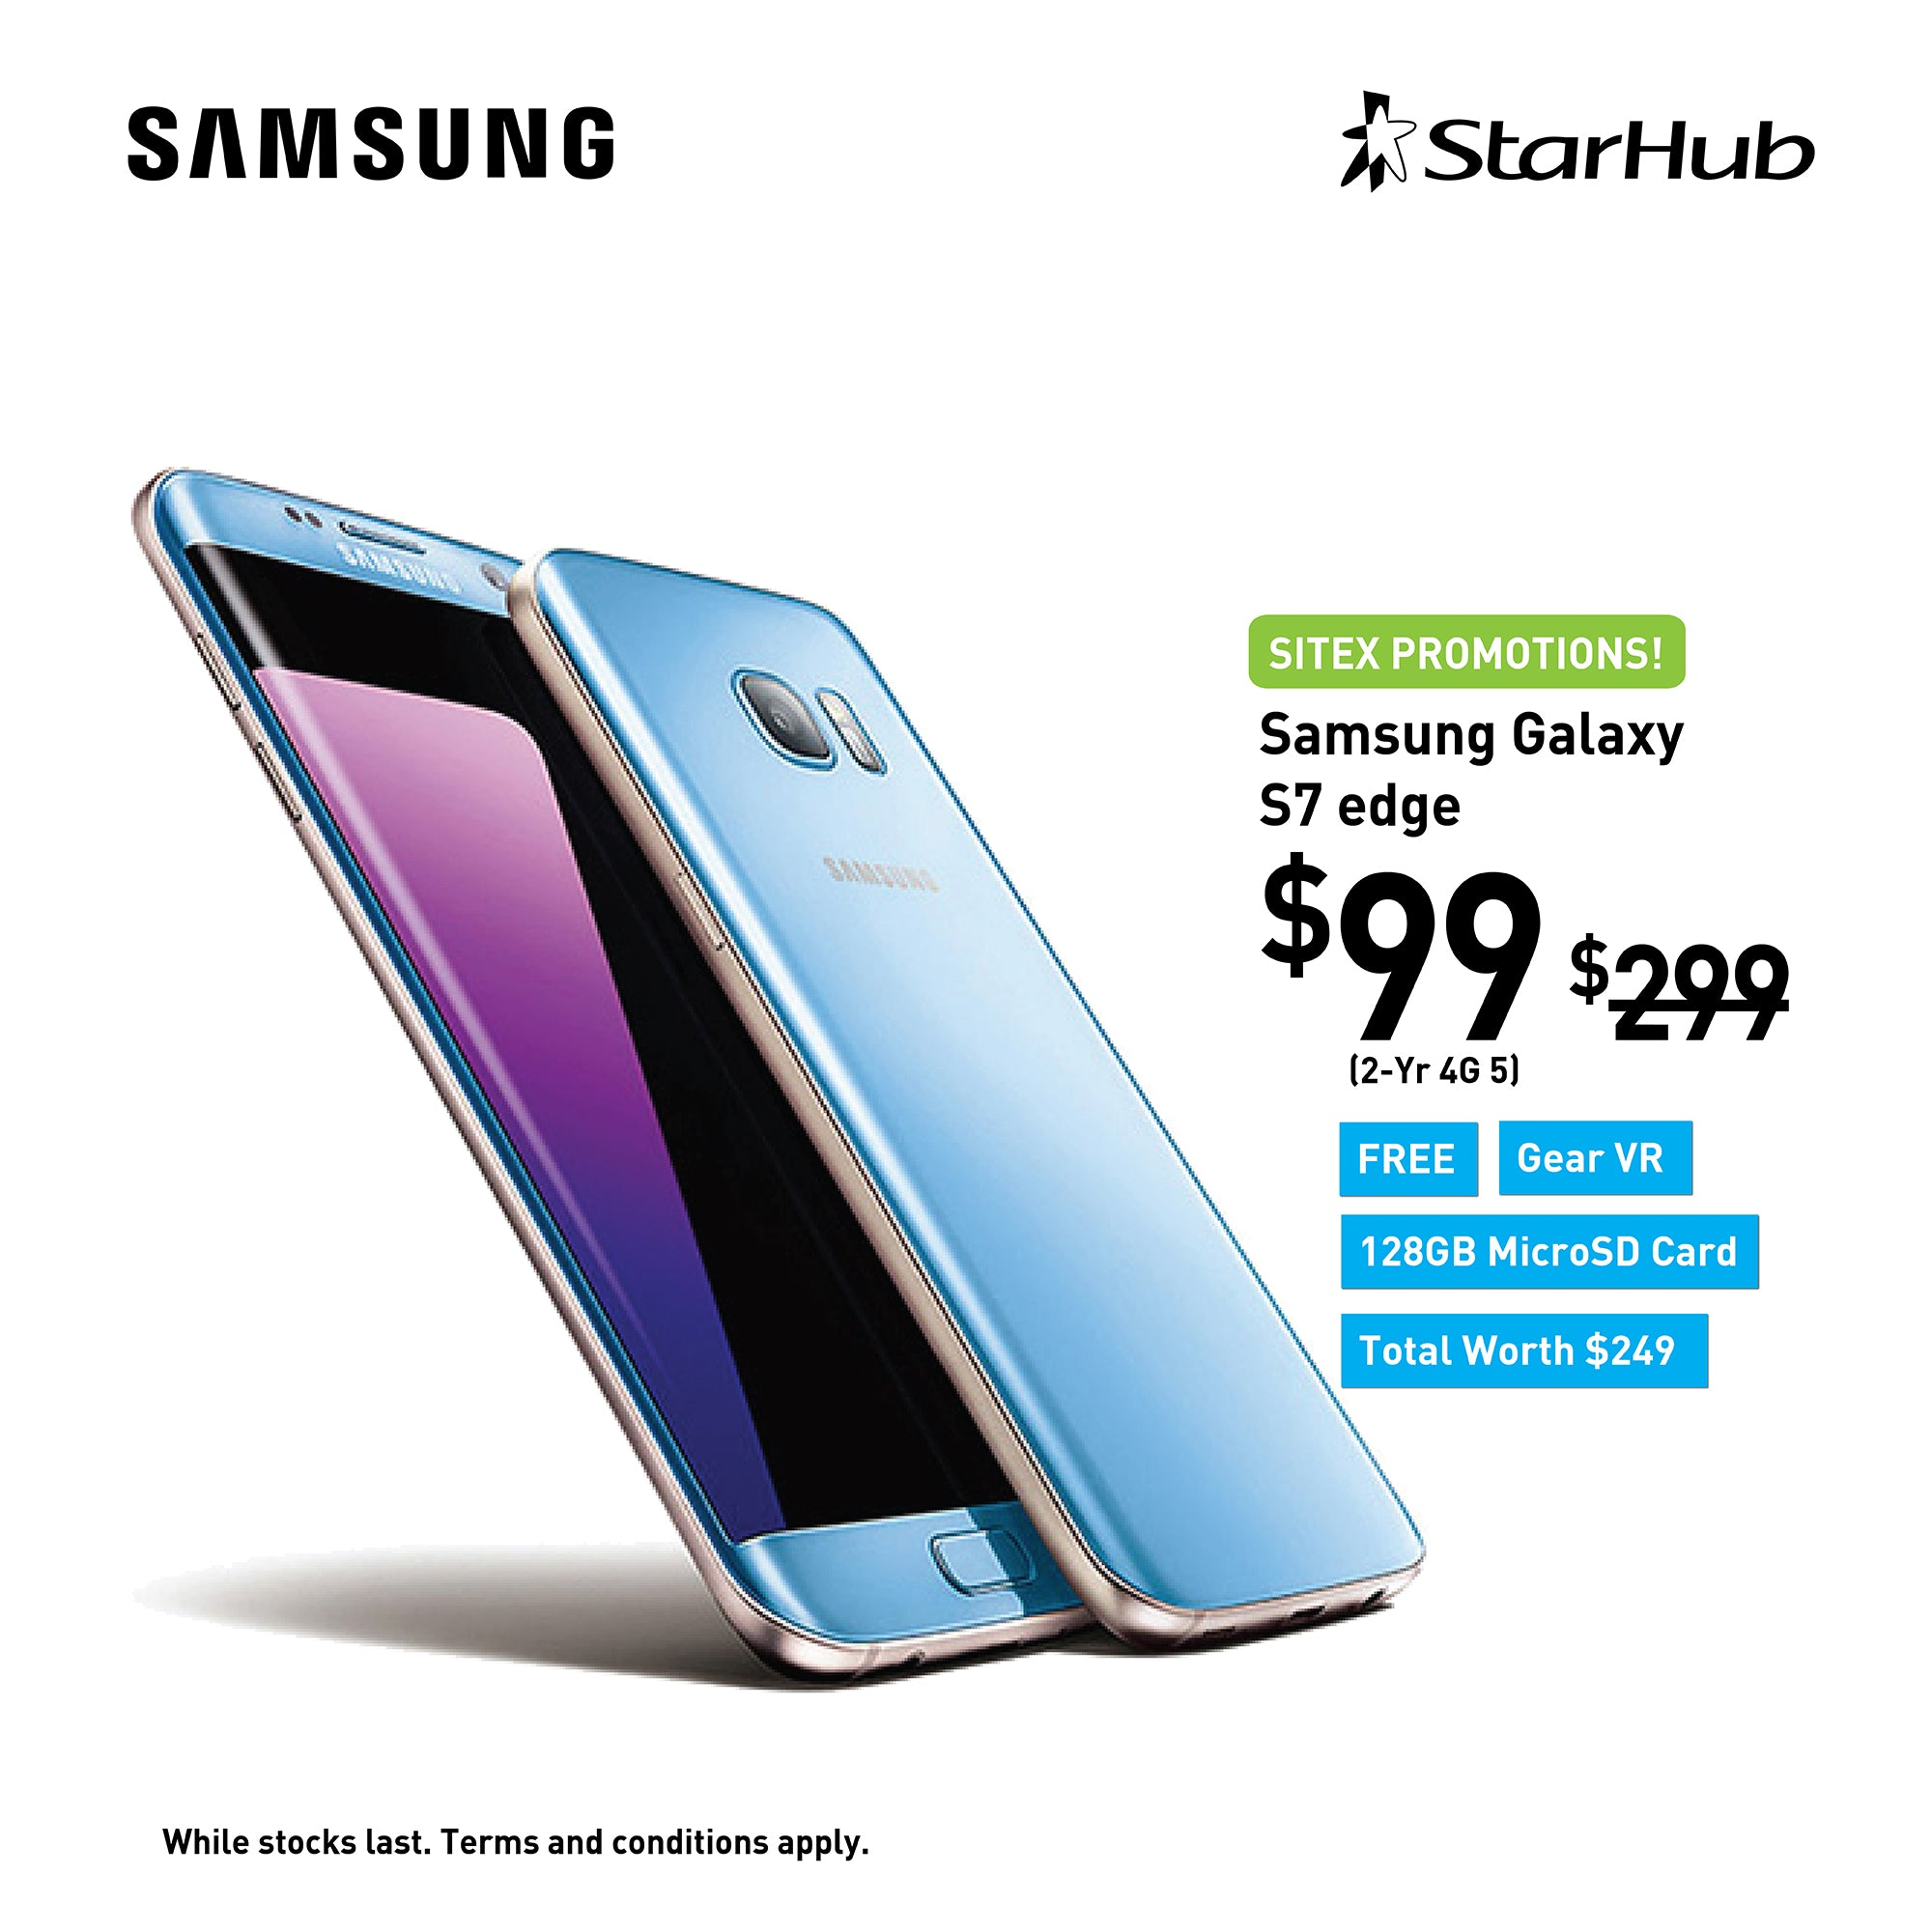 StarHub Sitex Offer Promotion S7 Samsung